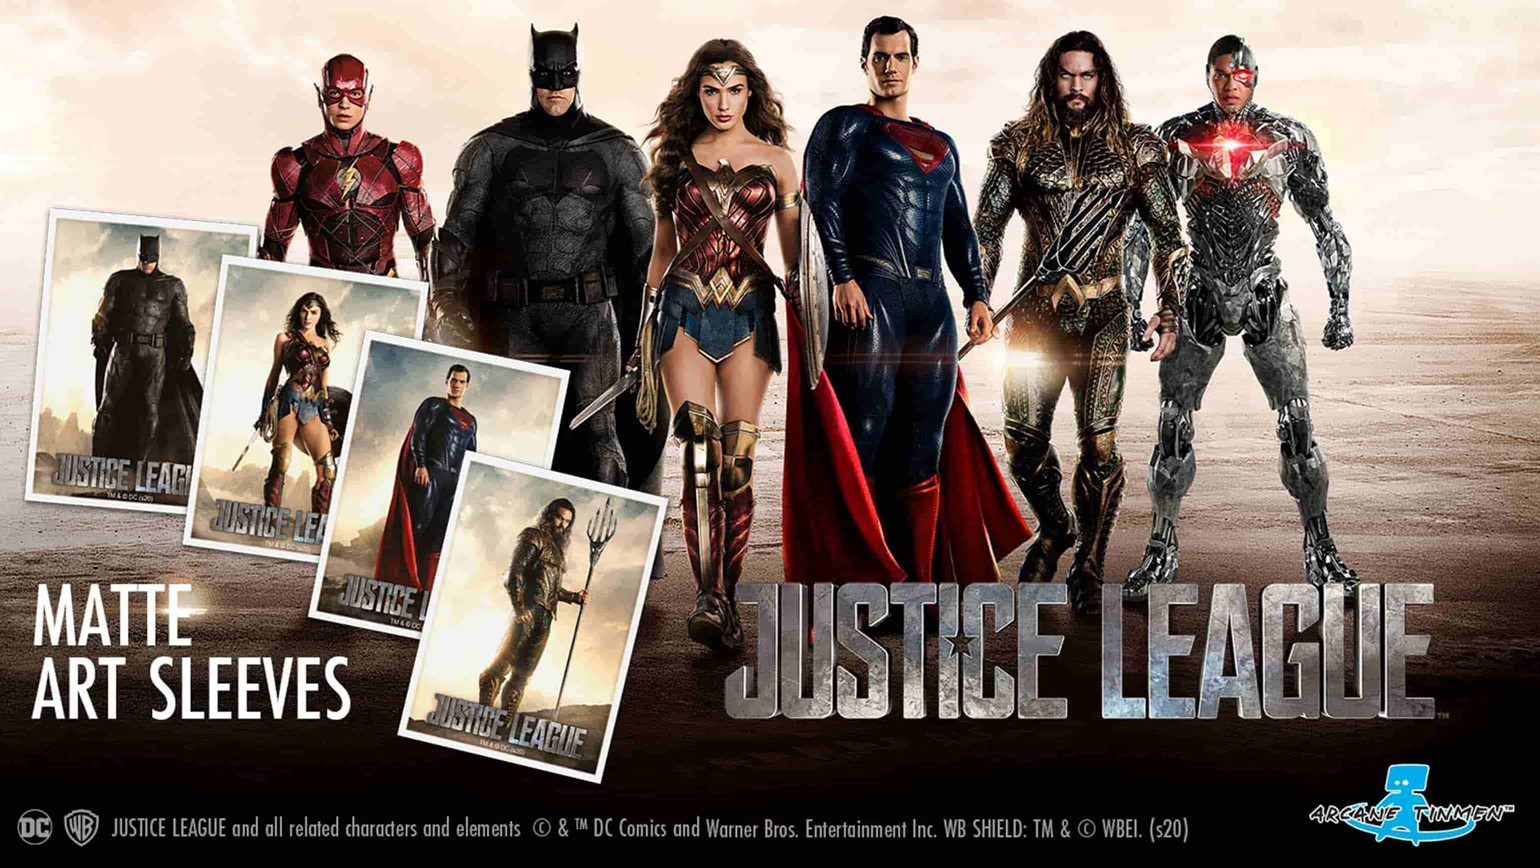 justice league card sleeves from dragon shield arrive may 22nd